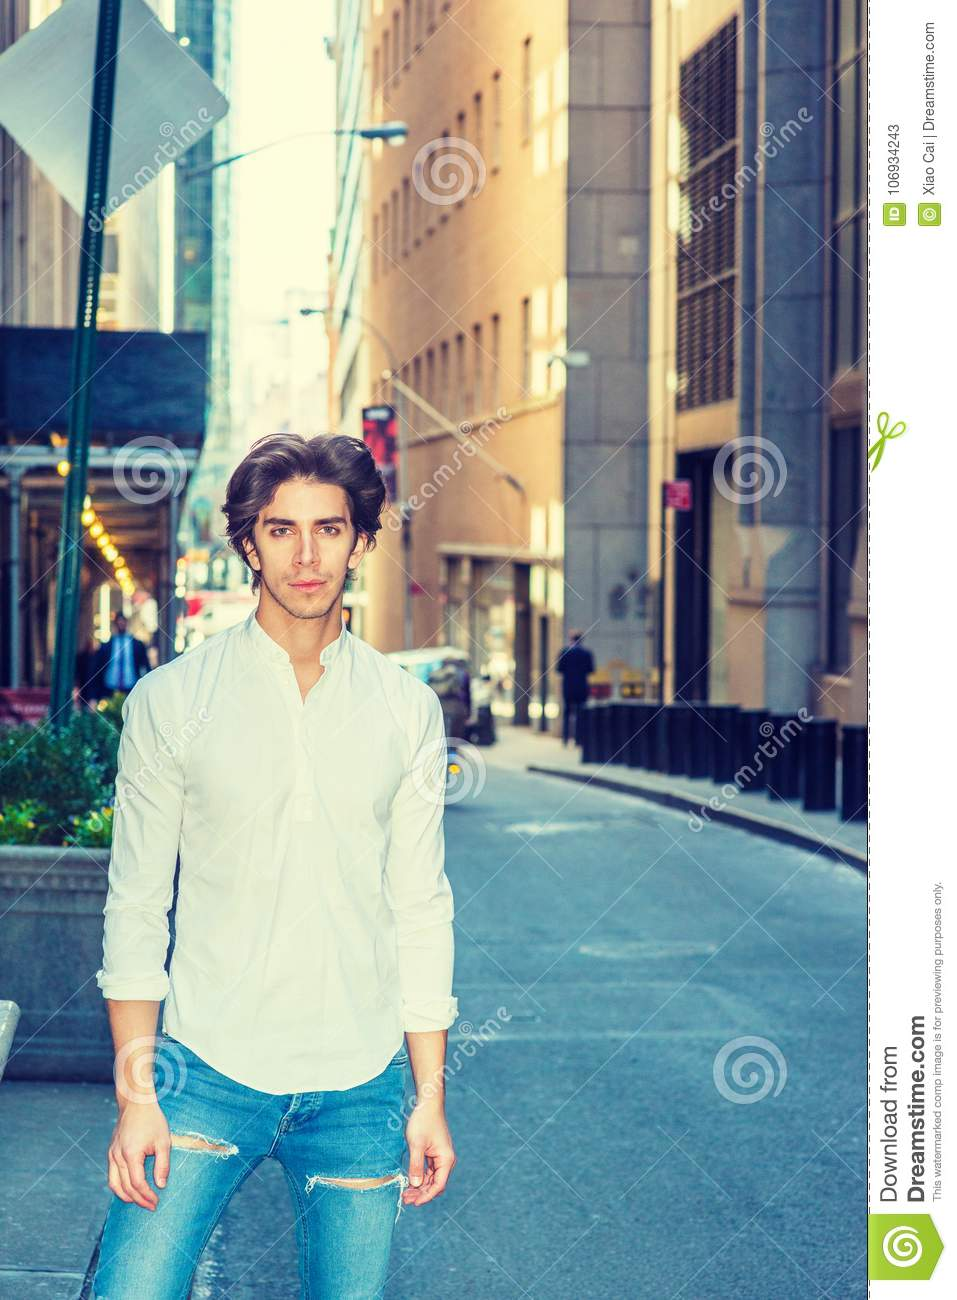 City life  stock image  Image of male, shirt, blue, jeans